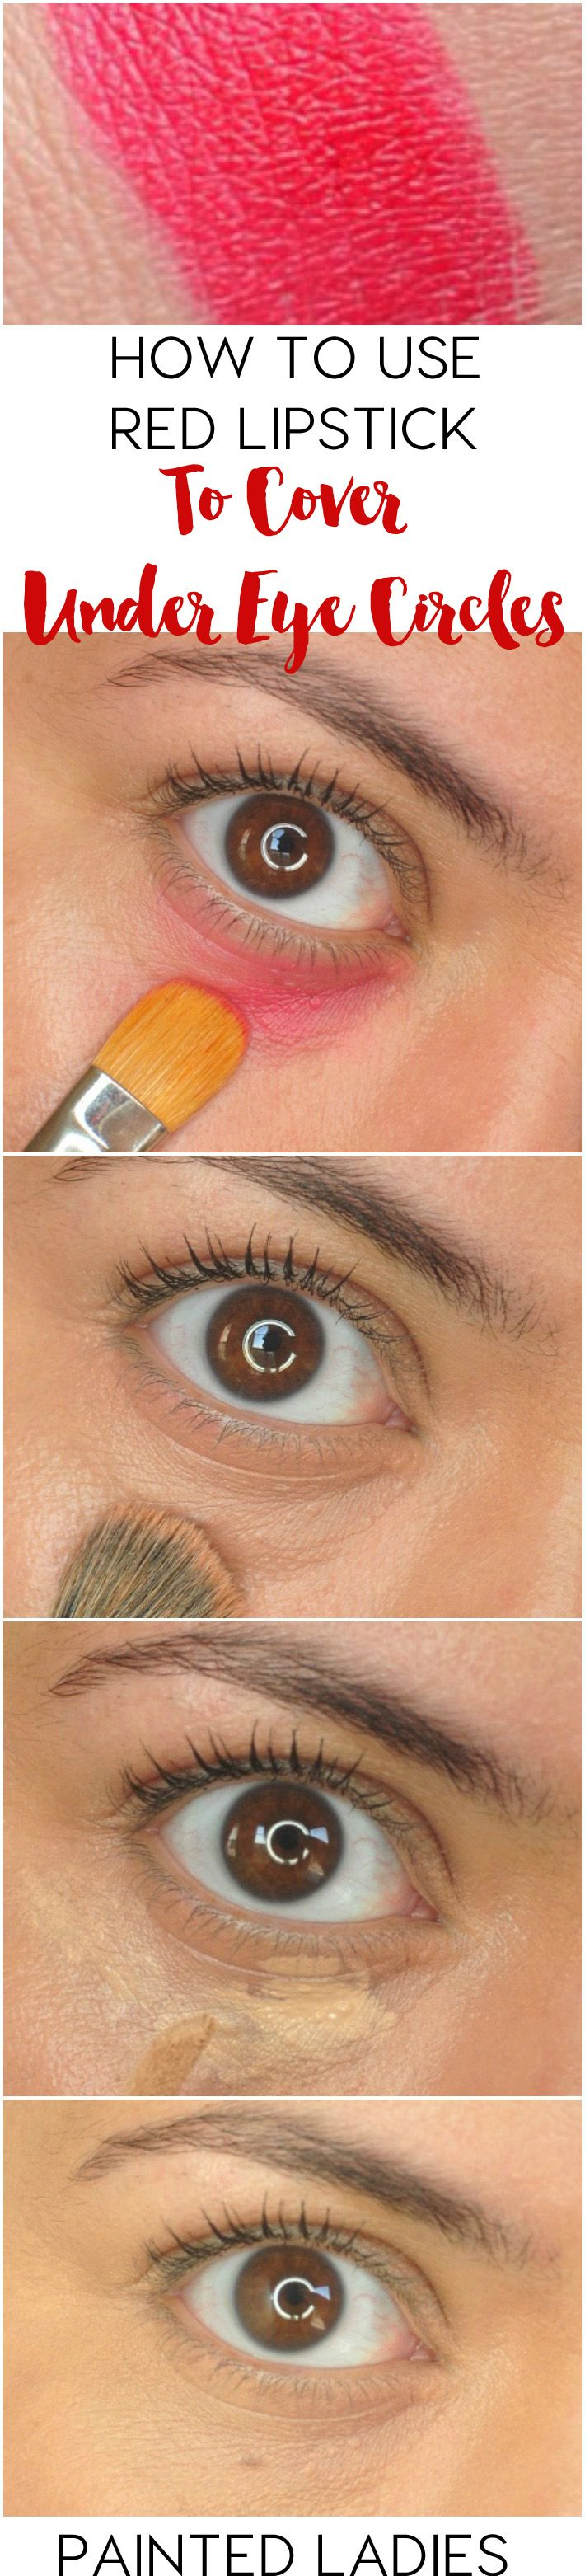 How To Use Red Lipstick To Cover Under Eye Circles Makeup Tutorial